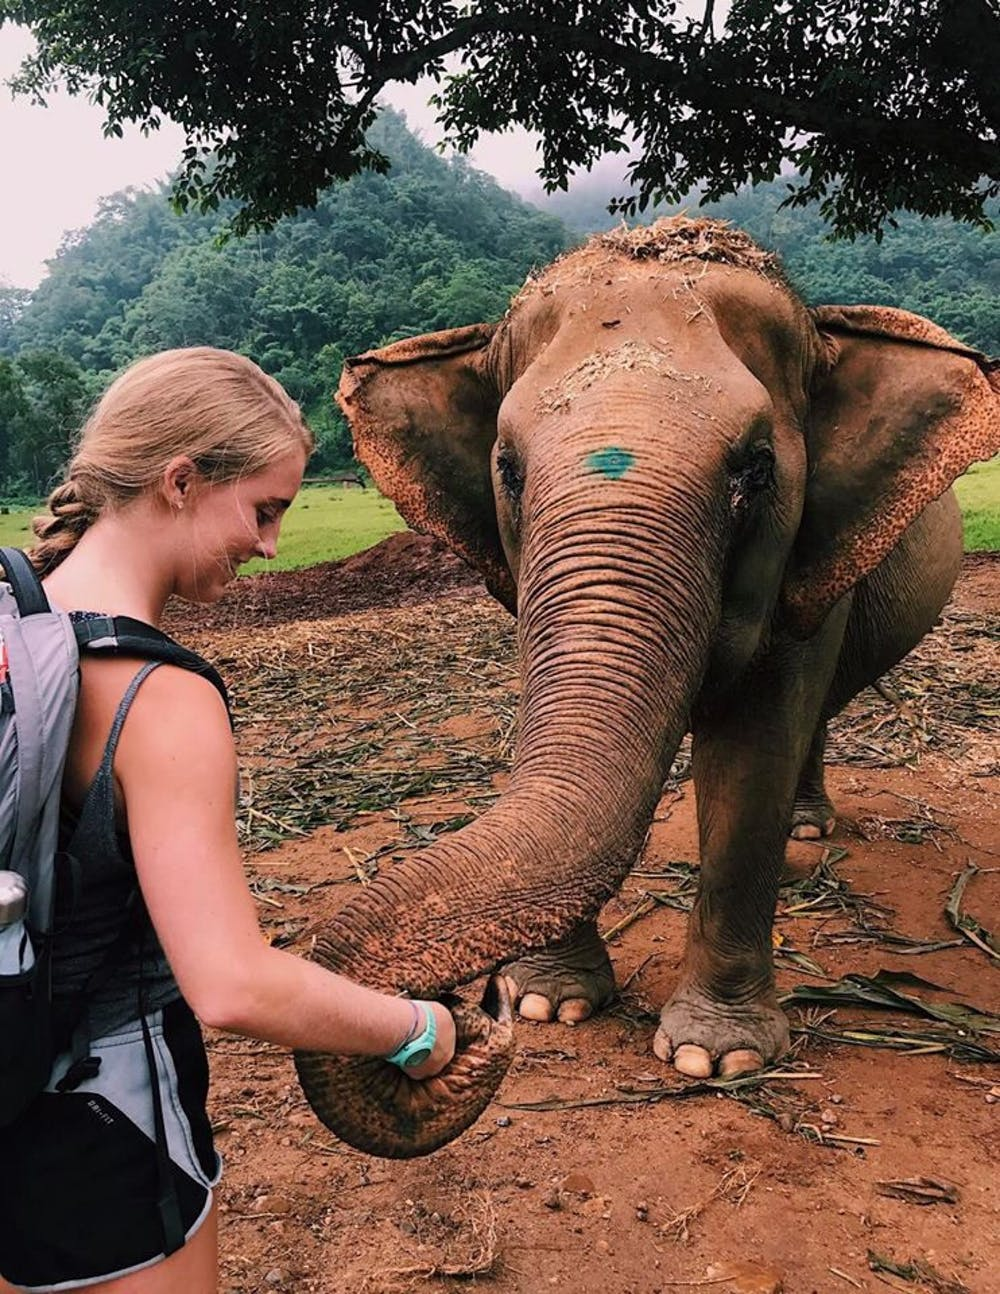 "<p><span id=""docs-internal-guid-da74b9da-dbbf-6242-df20-49857575a0b6""><span>Megan McDowell, a 19-year-old UF animal sciences sophomore, bonds with an elephant she's been treating in Chiang Mai, Thailand.</span></span></p>"